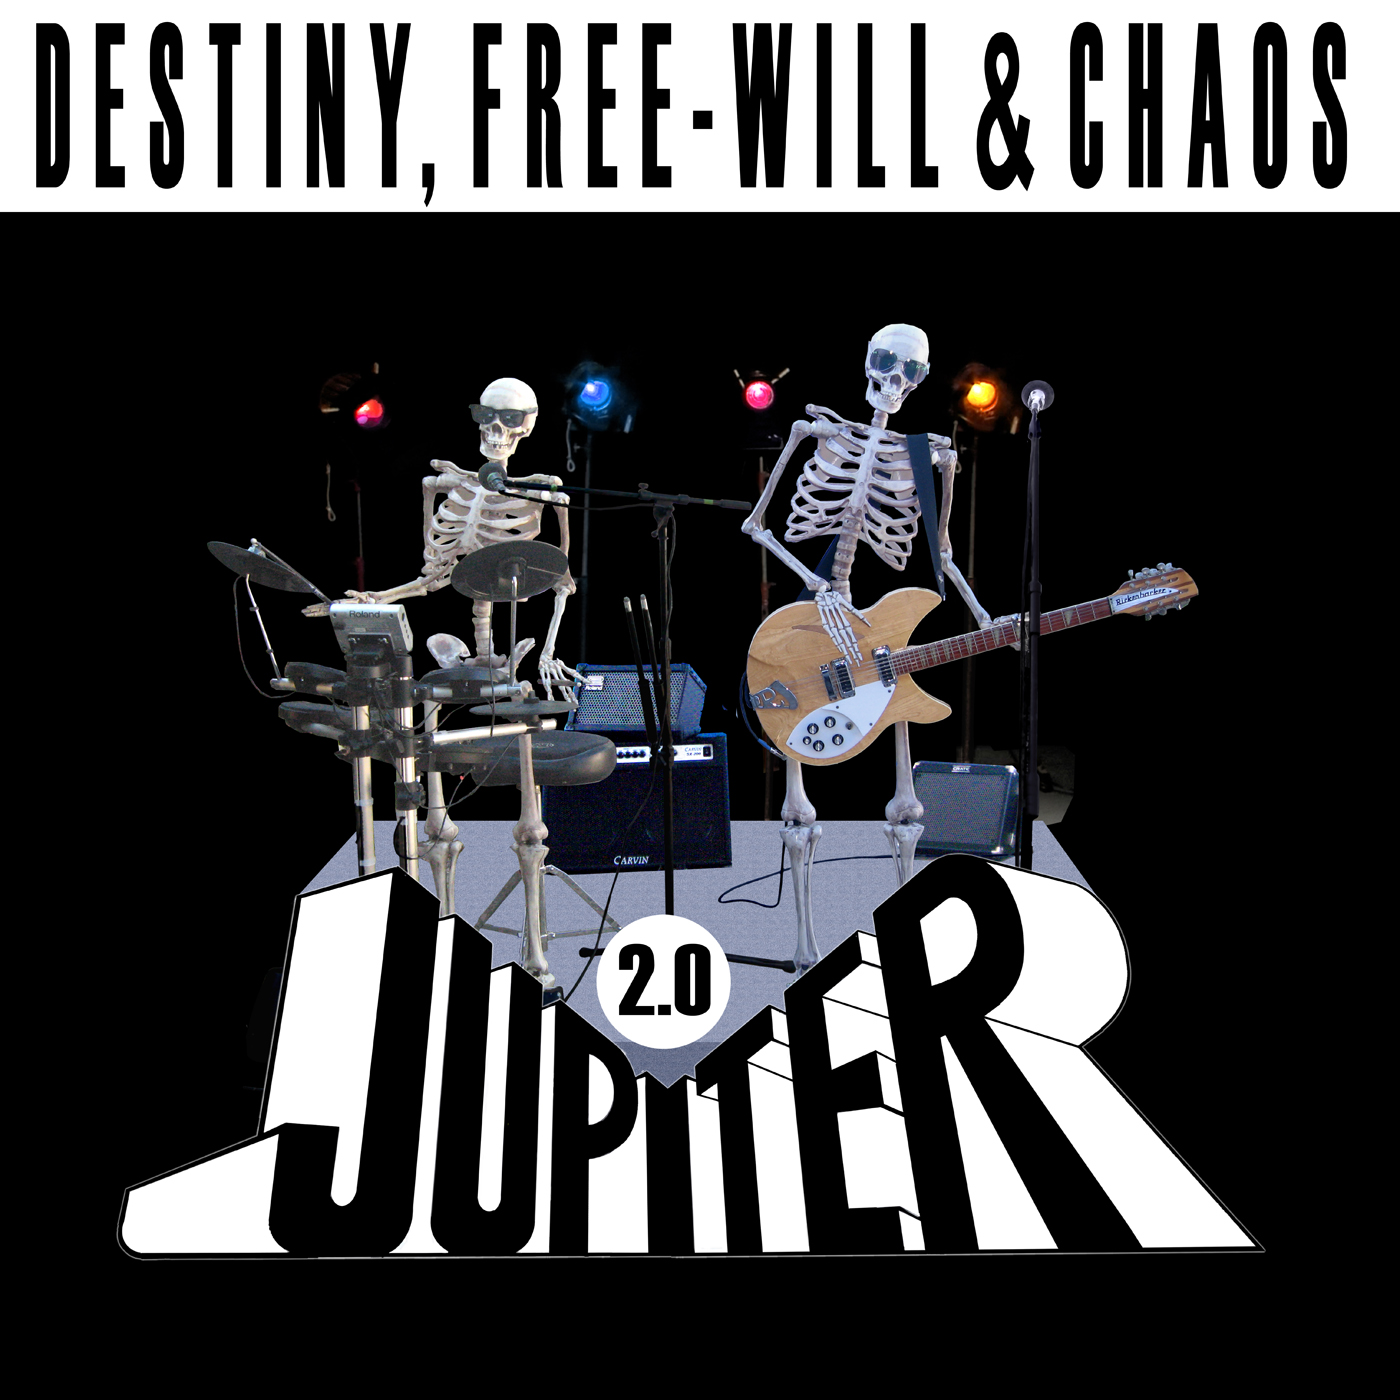 JUPITER 2.0 - Destiny, Free-Will & Chaos CD - Long Beach, California